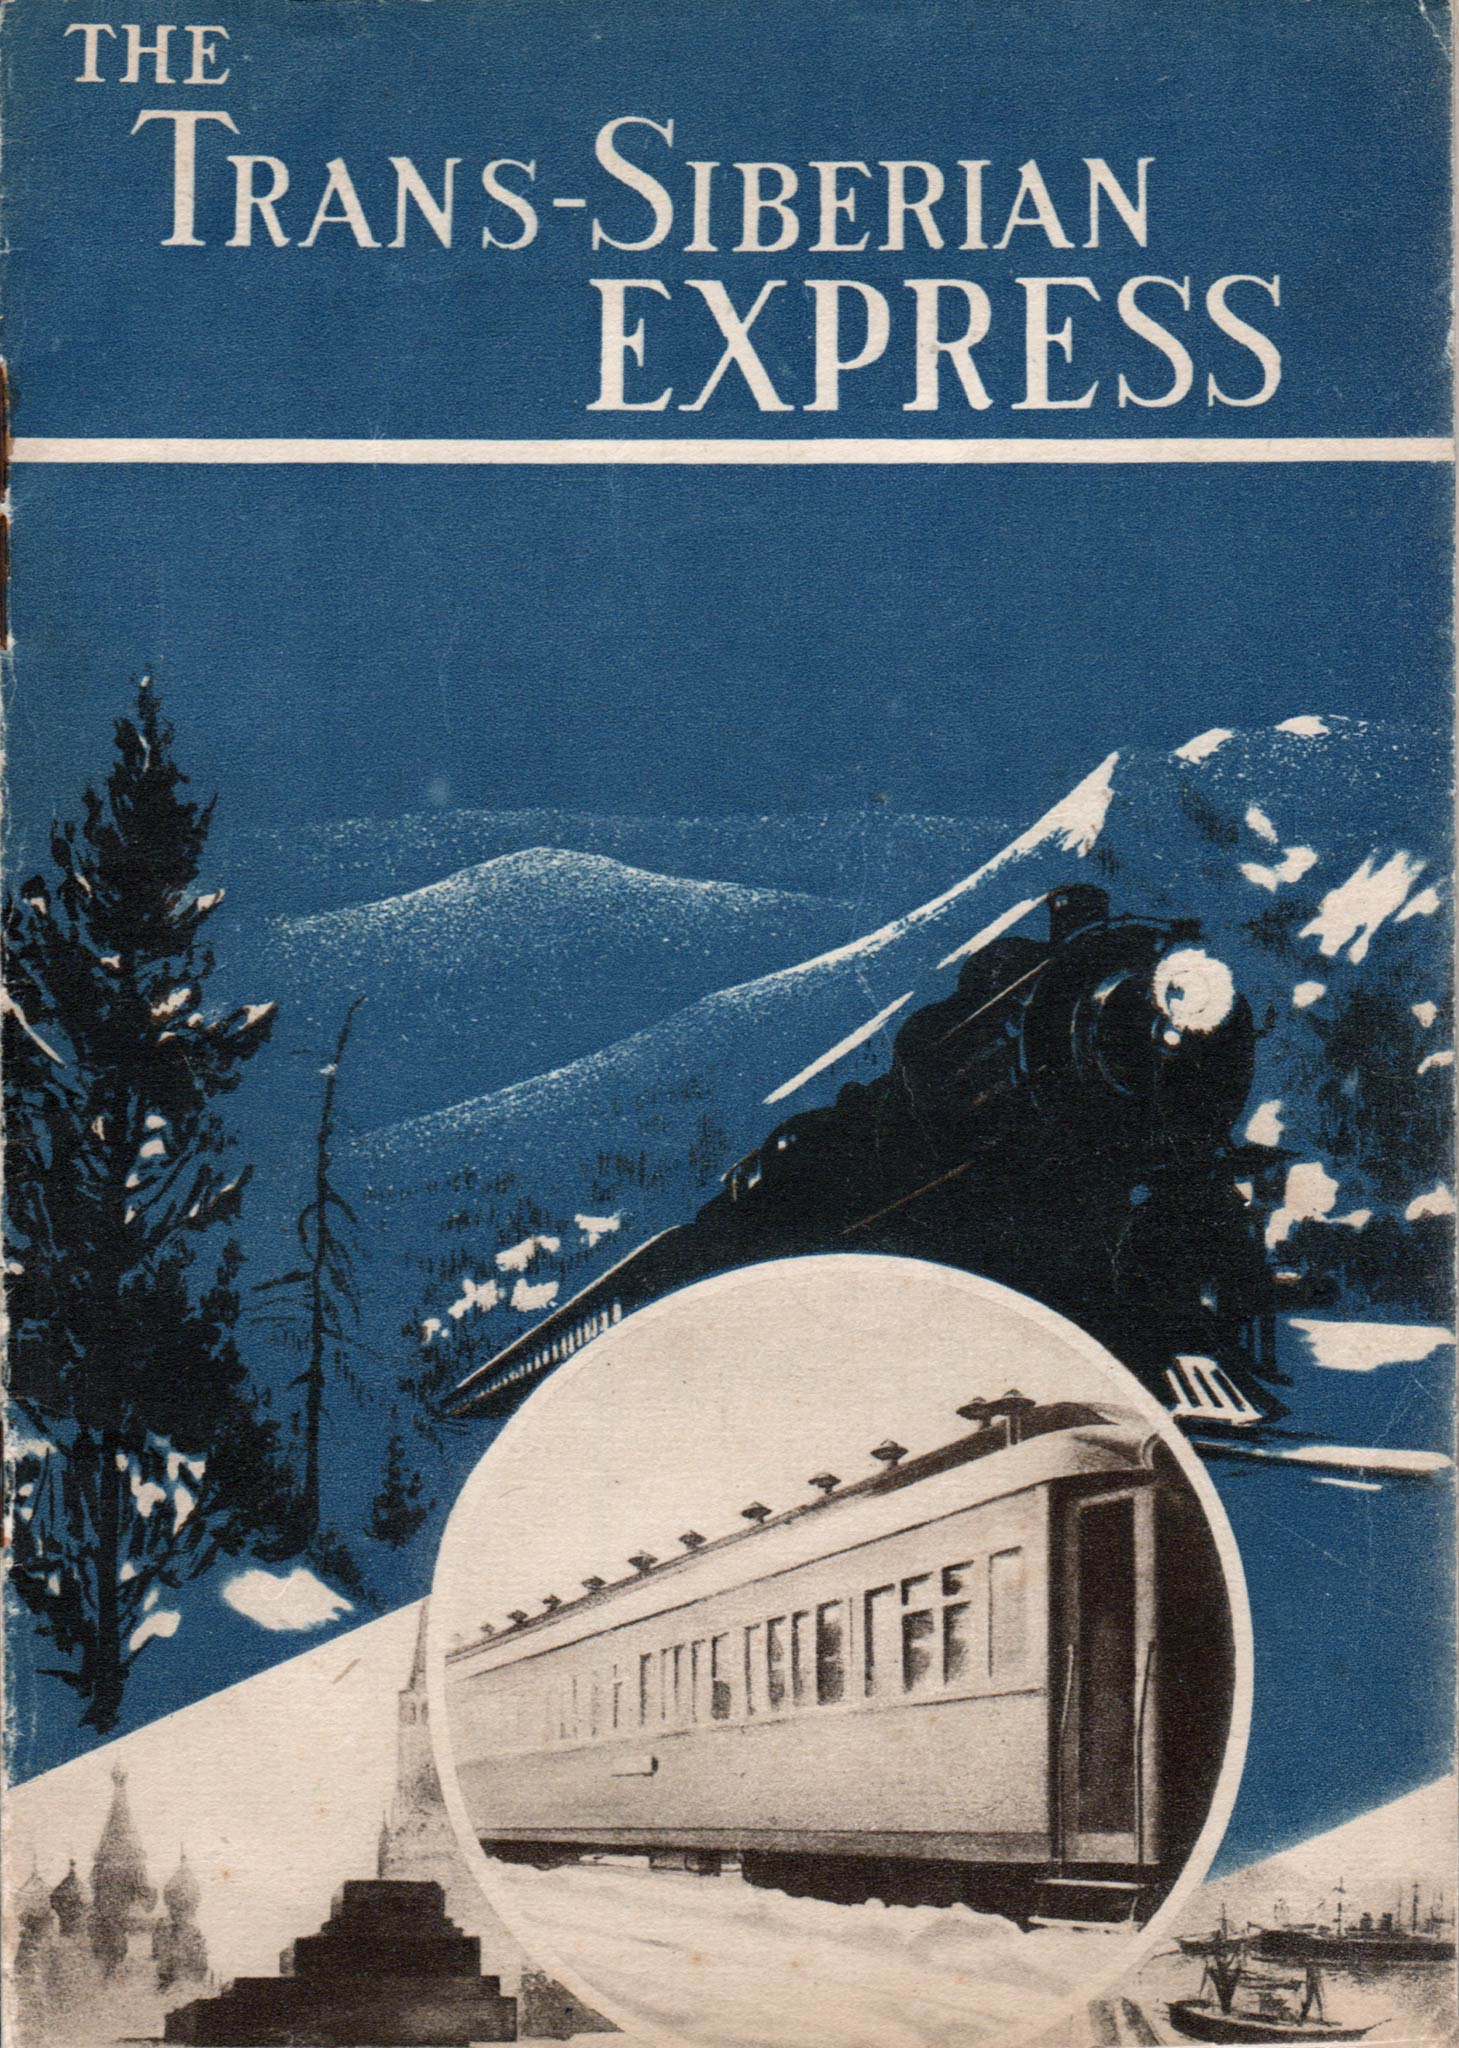 intourist posters from the soviet era